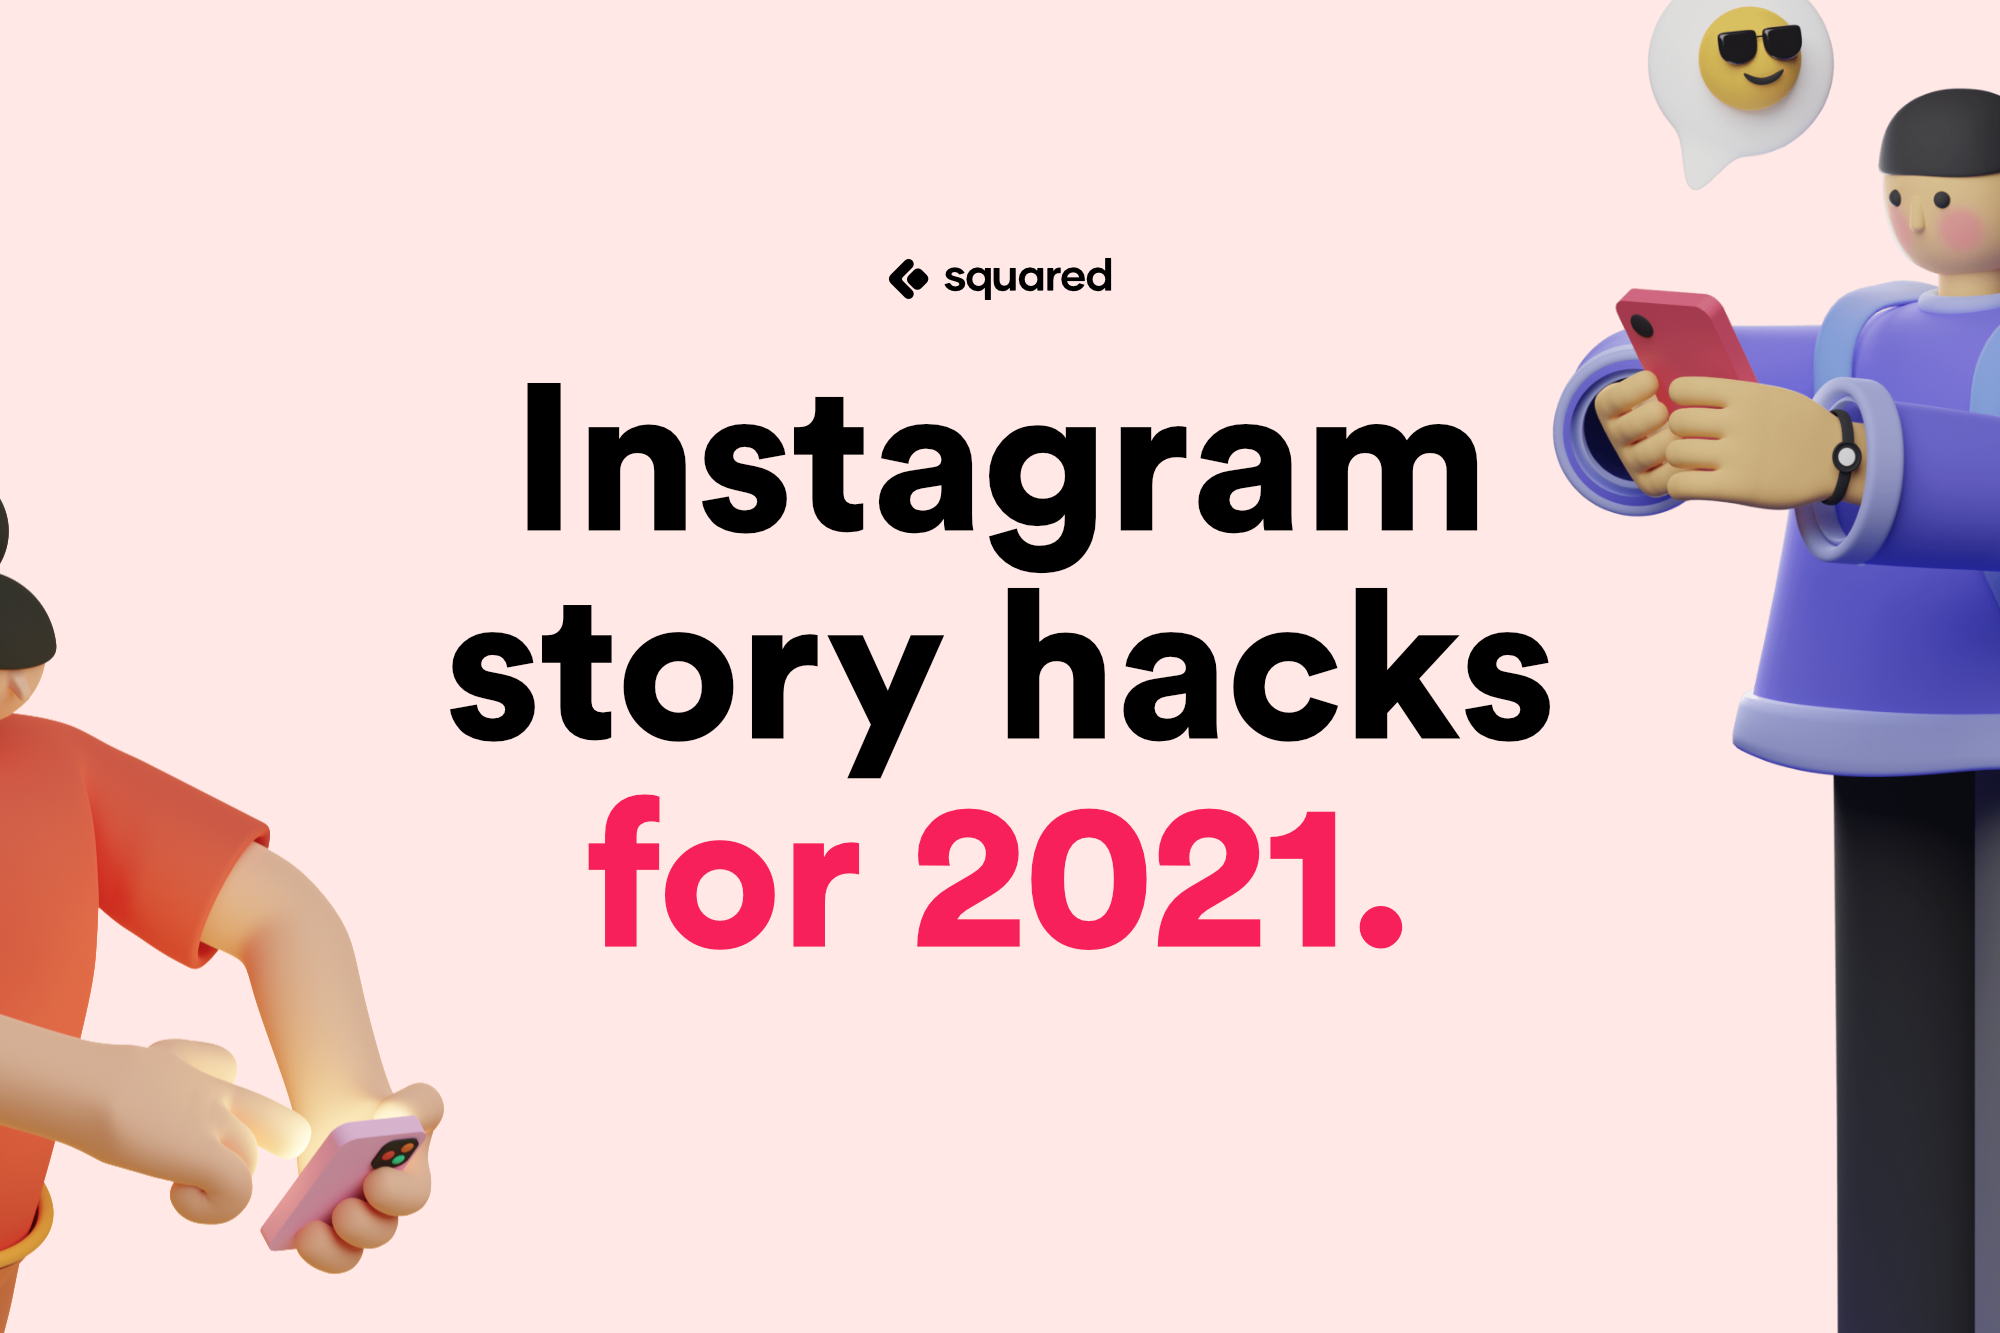 Instagram story hacks to boost your engagement in 2021